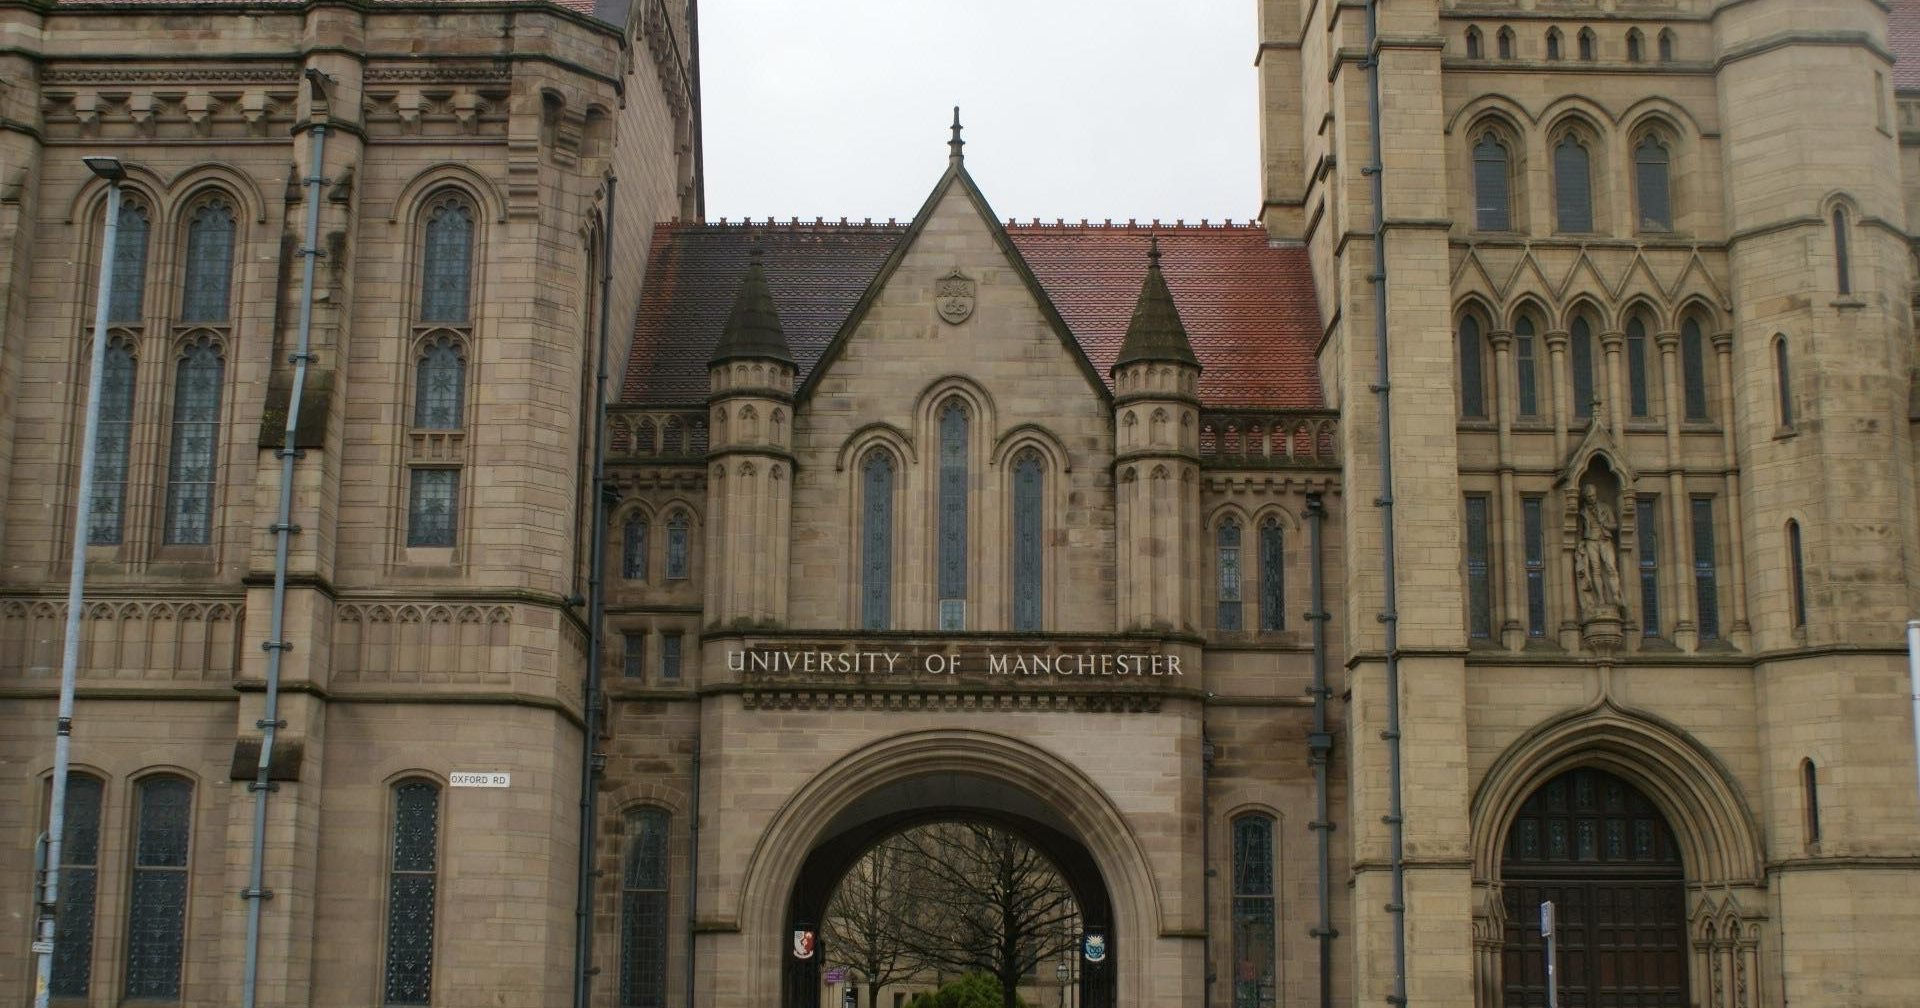 Exclusive Leaked Emails Reveal Uom Teaching Could Be Online Until January 2021